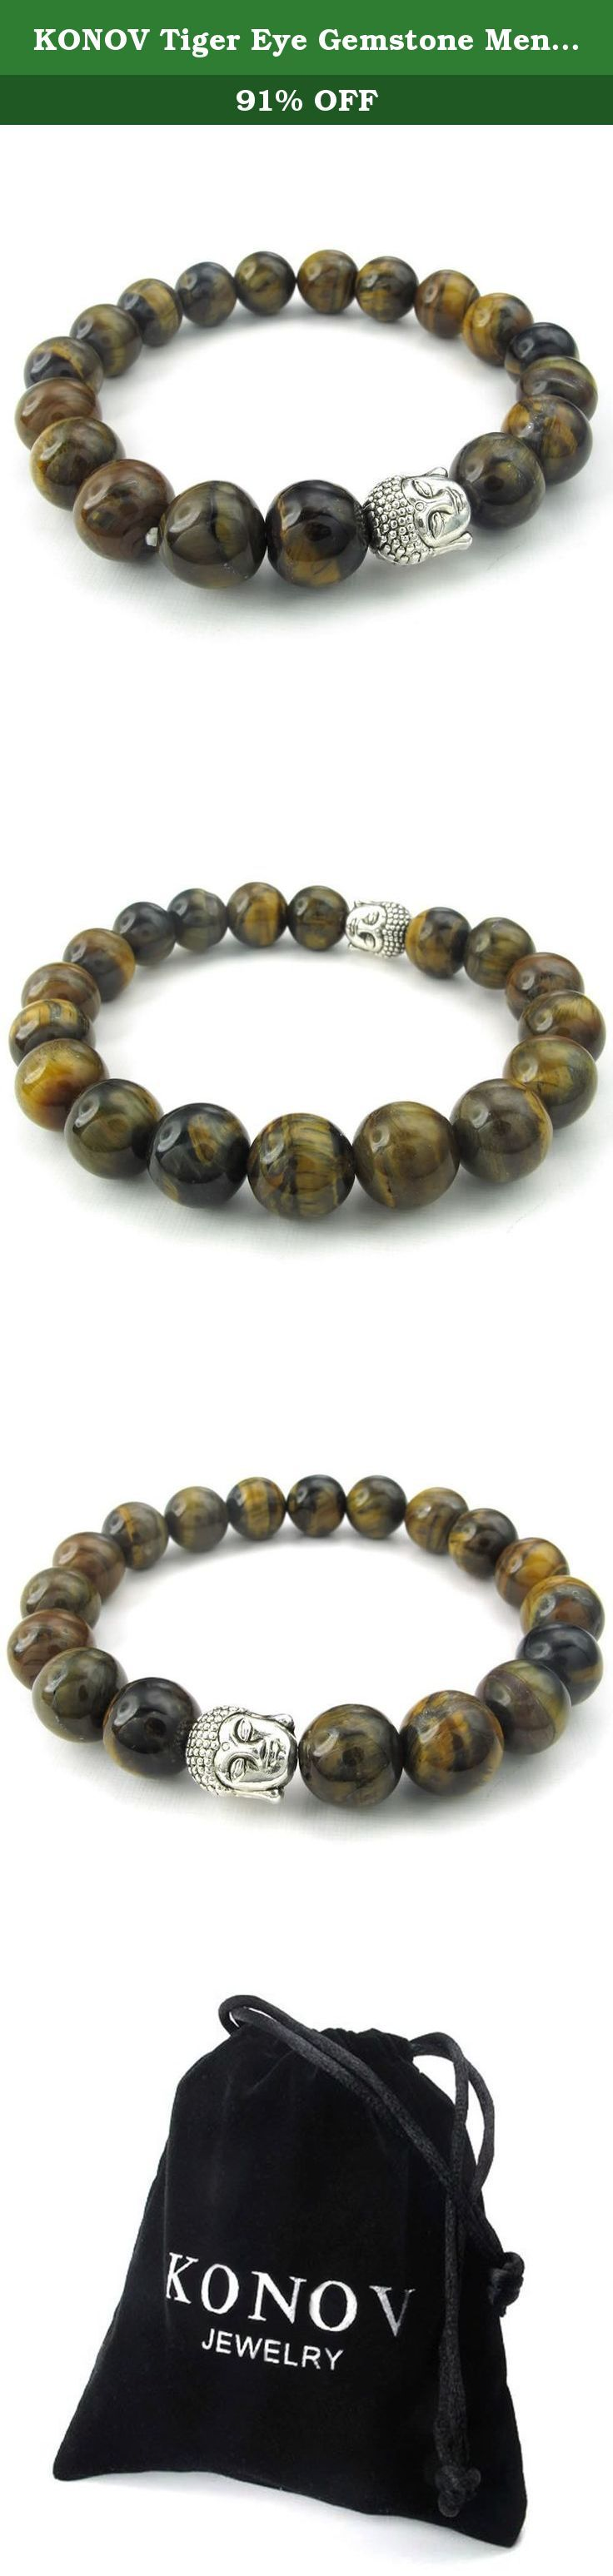 KONOV Tiger Eye Gemstone Mens Womens Bracelet, 10mm Energy Bead, Buddha Mala, Brown Silver. Why choose Stainless Steel Jewelry? Stainless Steel jewelry does not tarnish and oxidize, which can last longer than other jewelries. It is able to endure a lot of wear and tear. And it is amazingly hypoallergenic. Such advantages make it a more popular accessory. Why need Stainless Steel Jewelry? High quality stainless steel has high resistance to rust, corrosion and tarnishing, which requires...